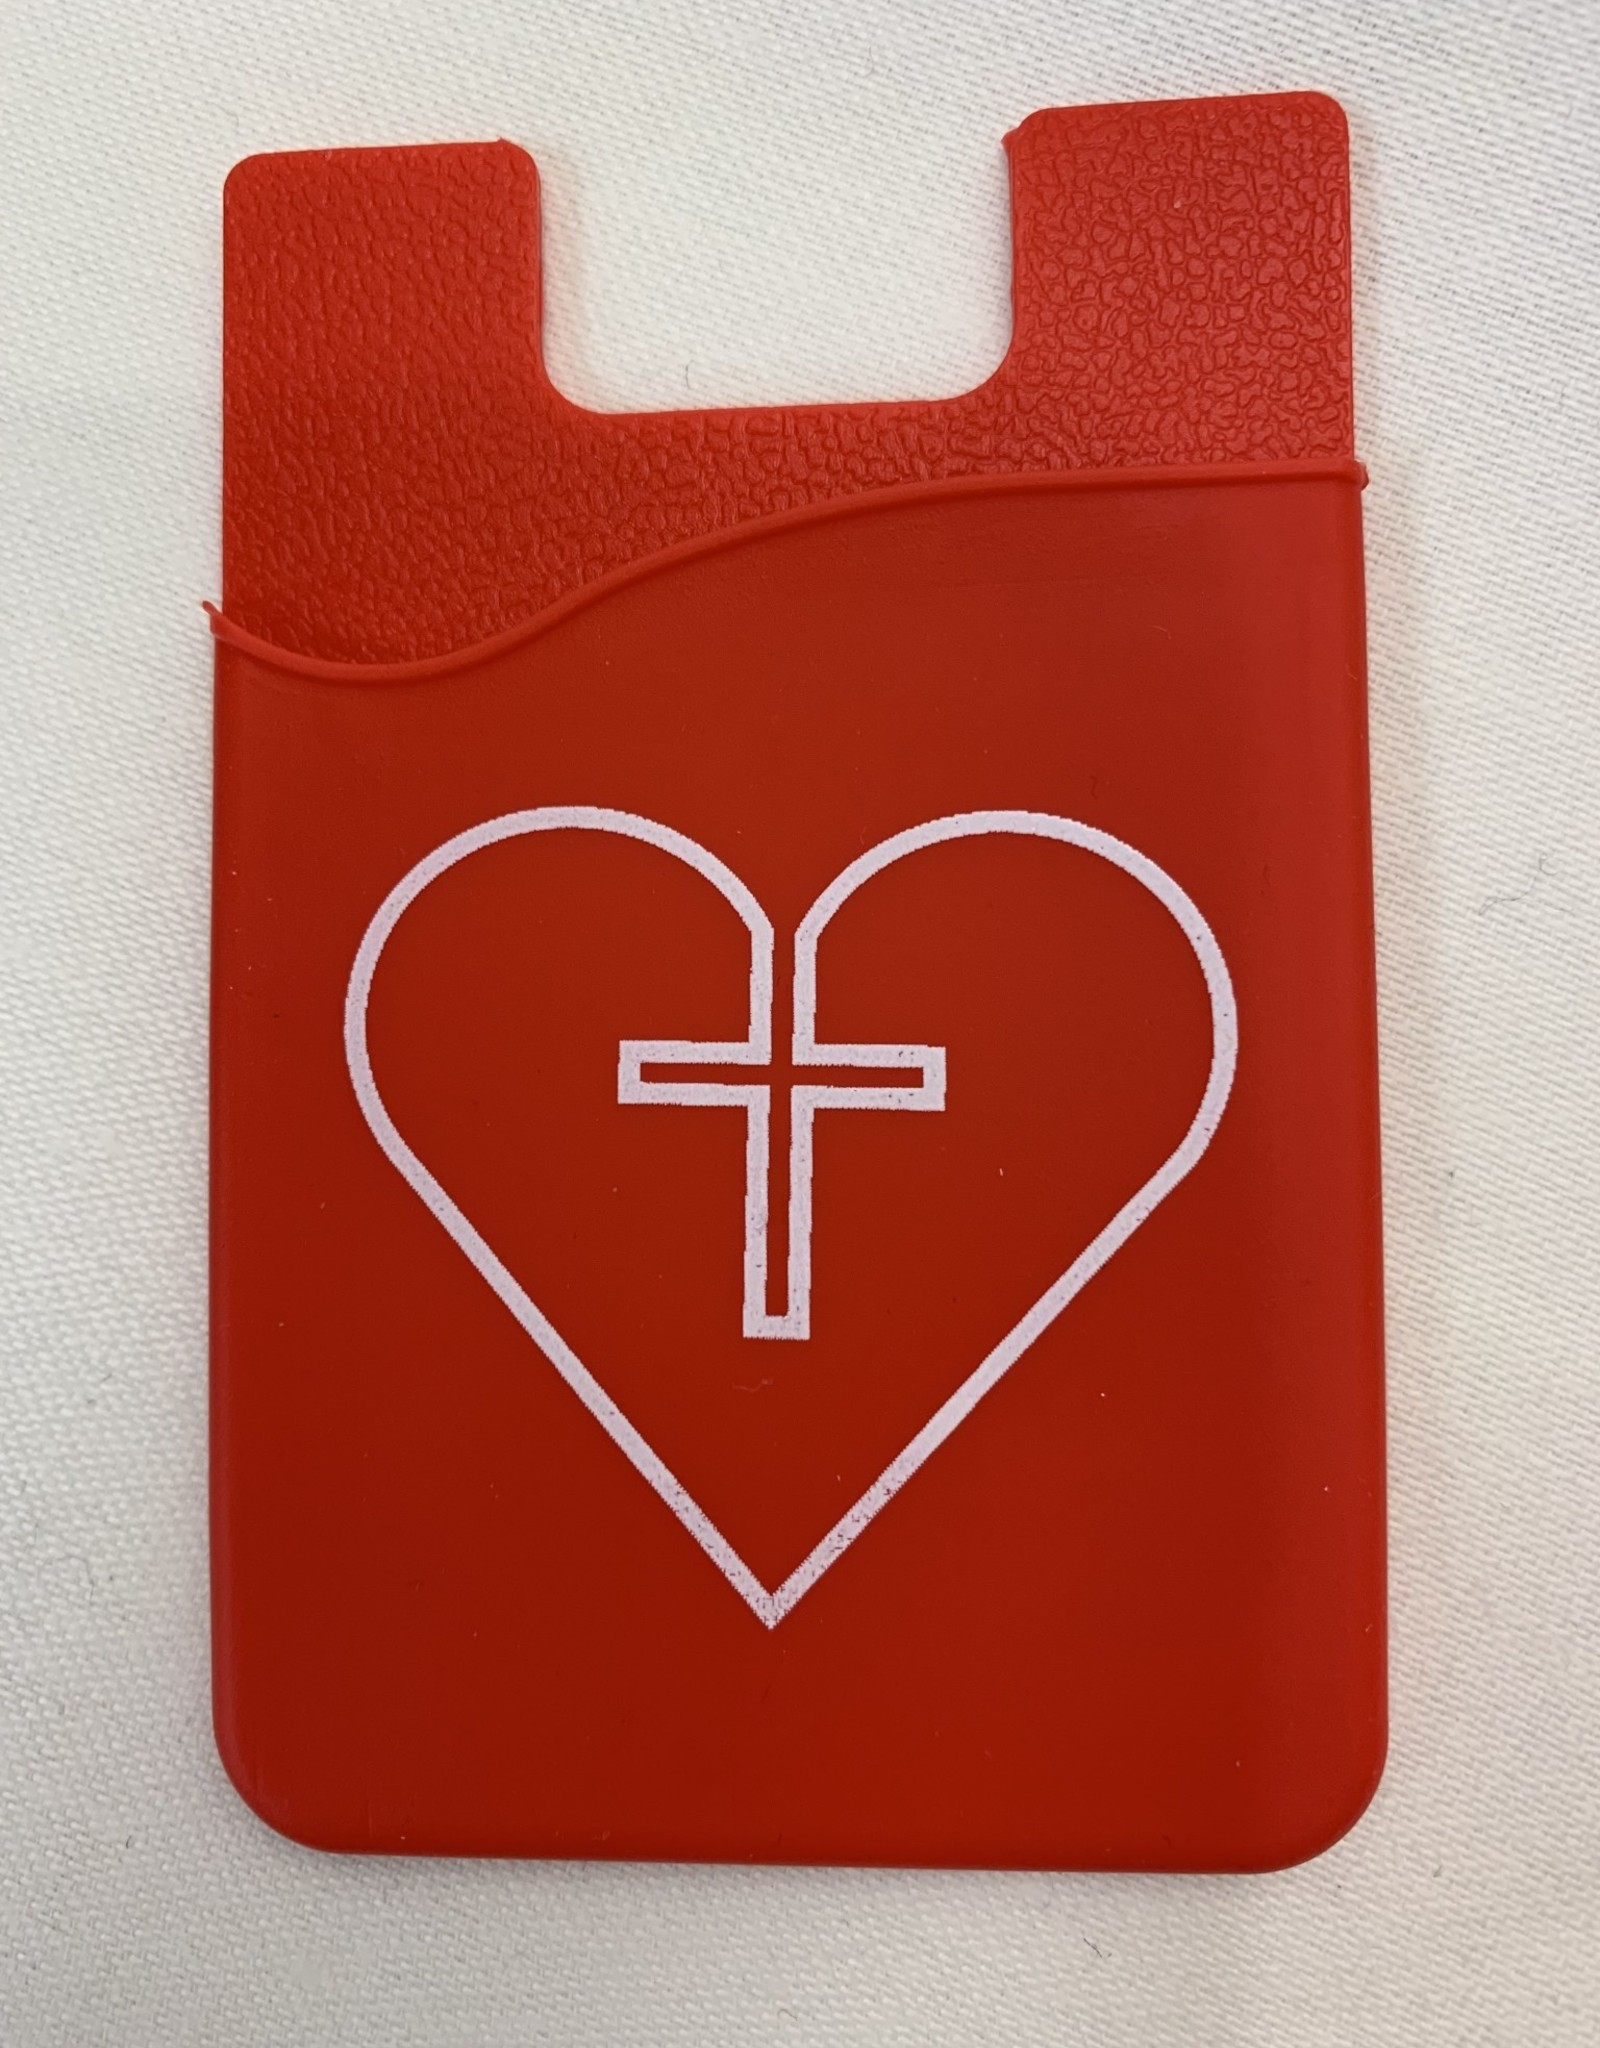 CELL PHONE iWALLET RED